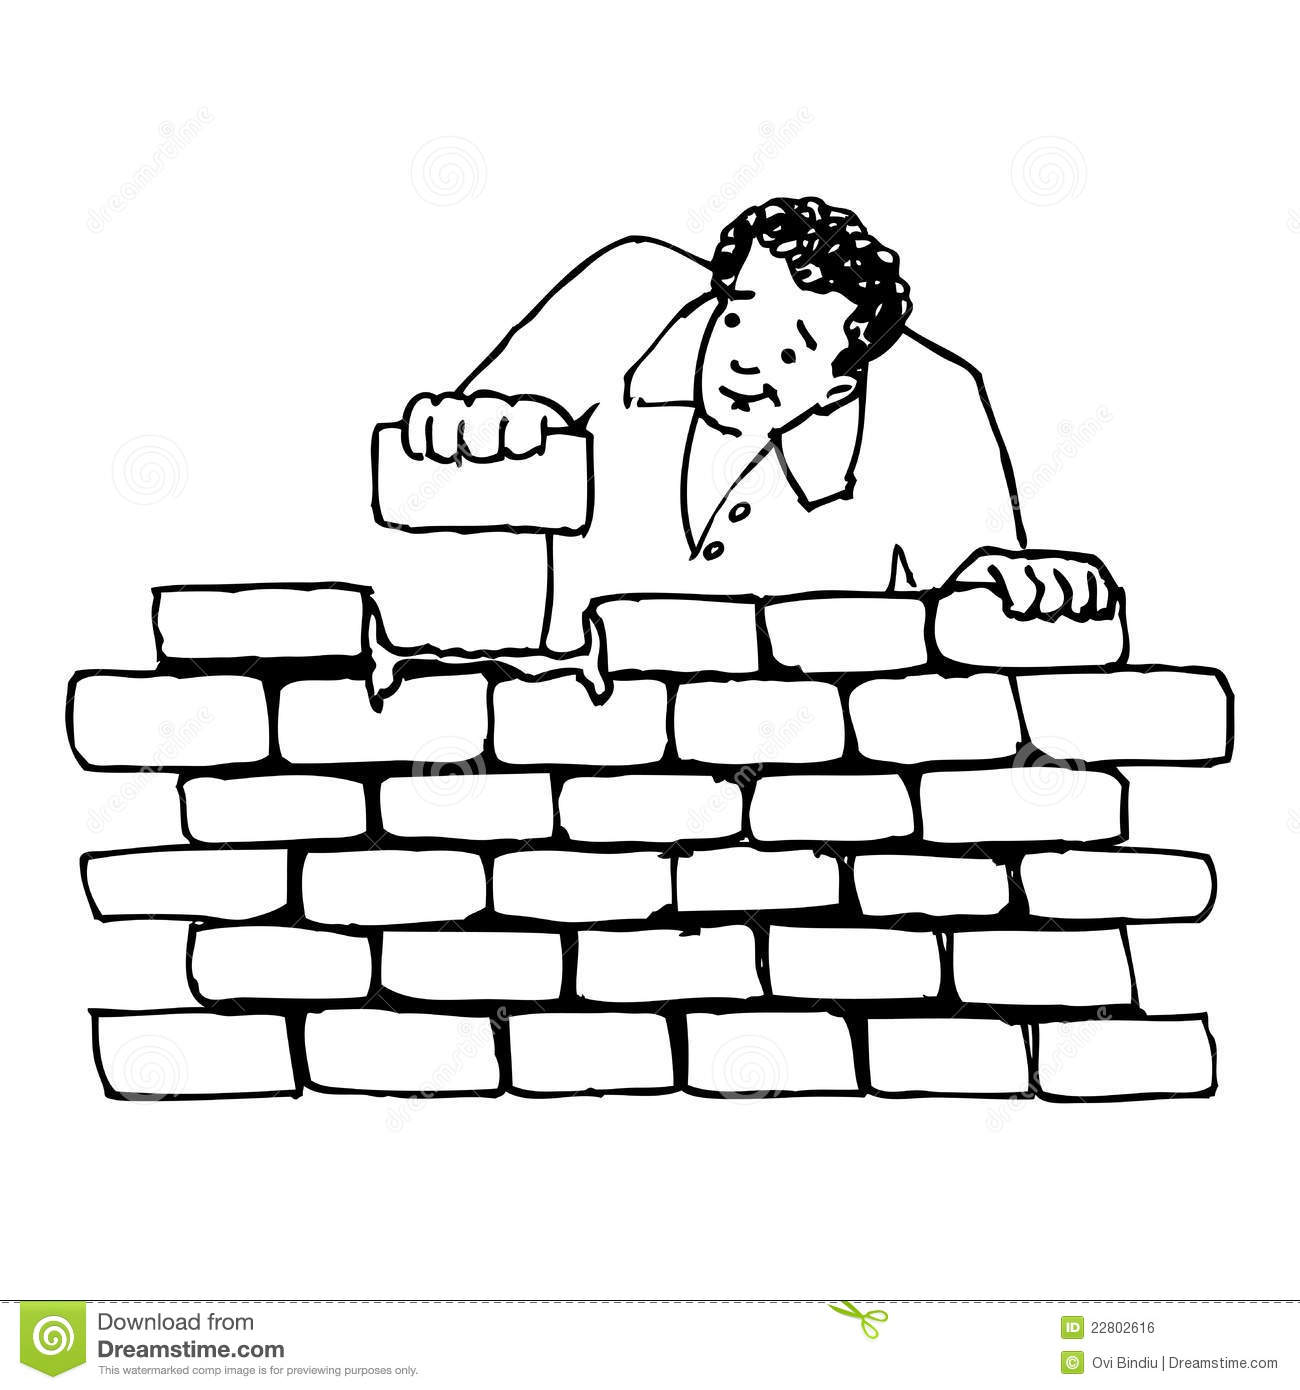 Construction d'un mur illustration stock. Illustration du